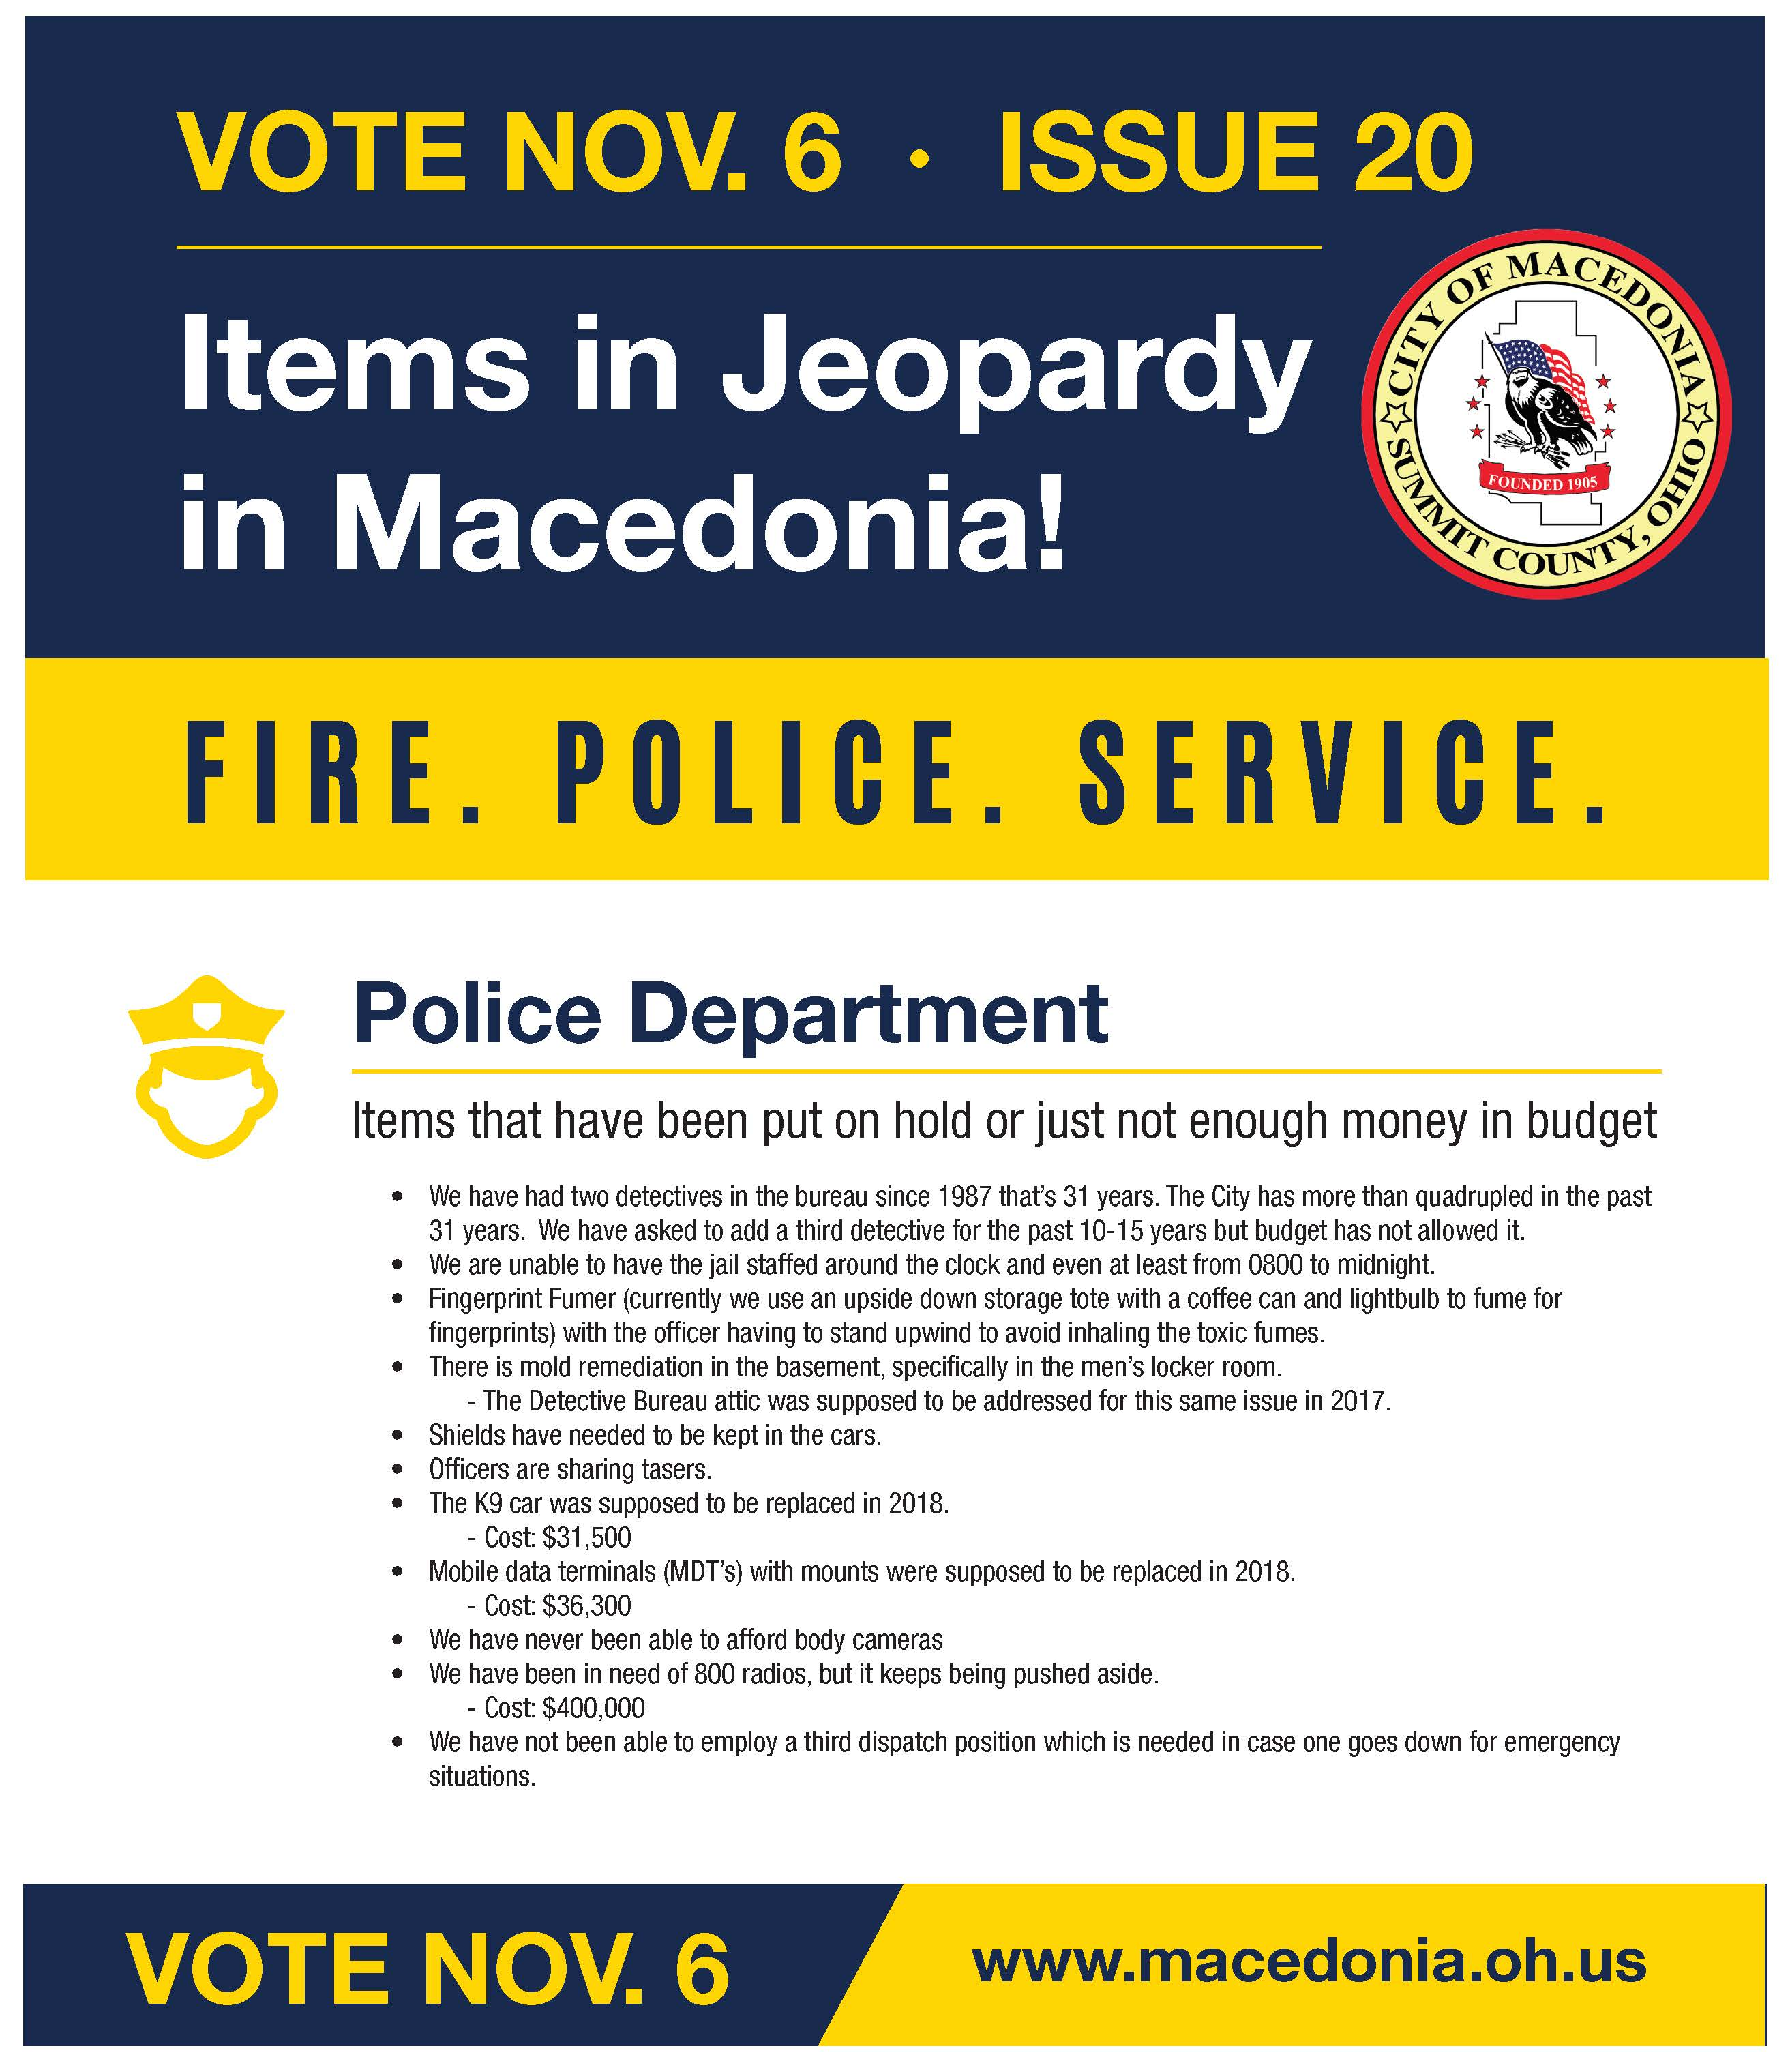 POLICE Jeopardy Items